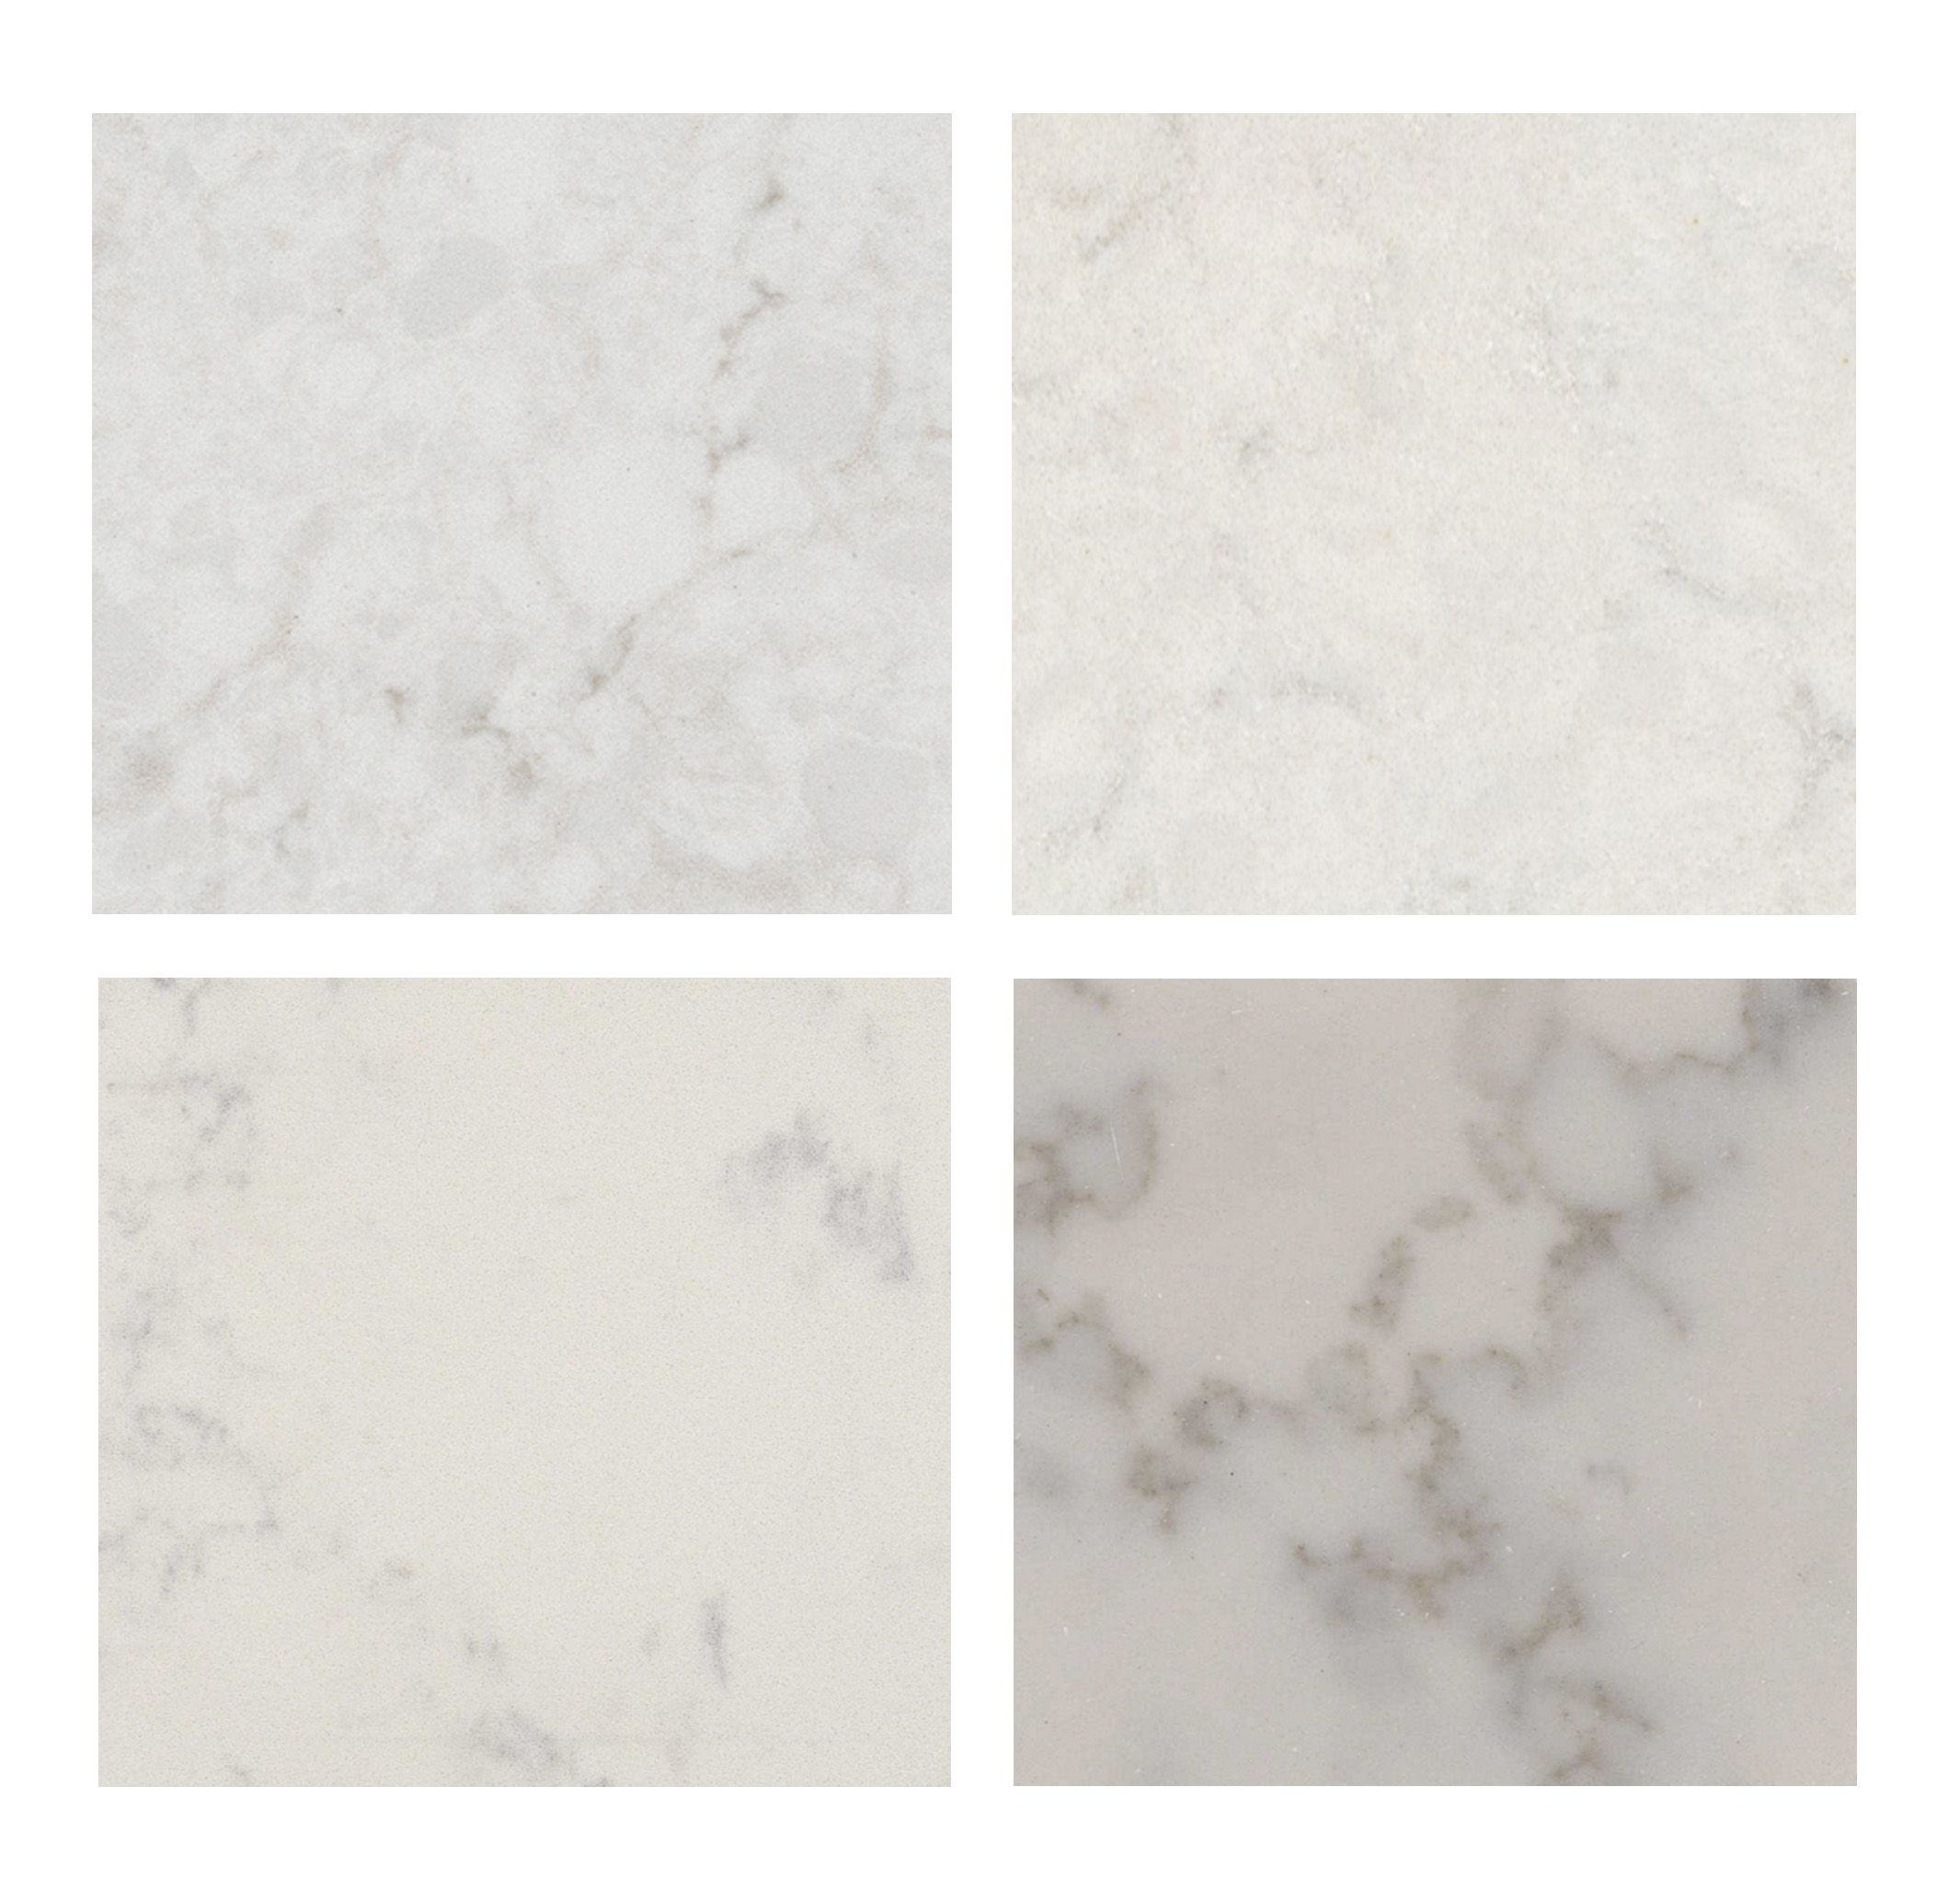 about to inc top star countertops countertop and things marble consider sills stone window cost five carrara